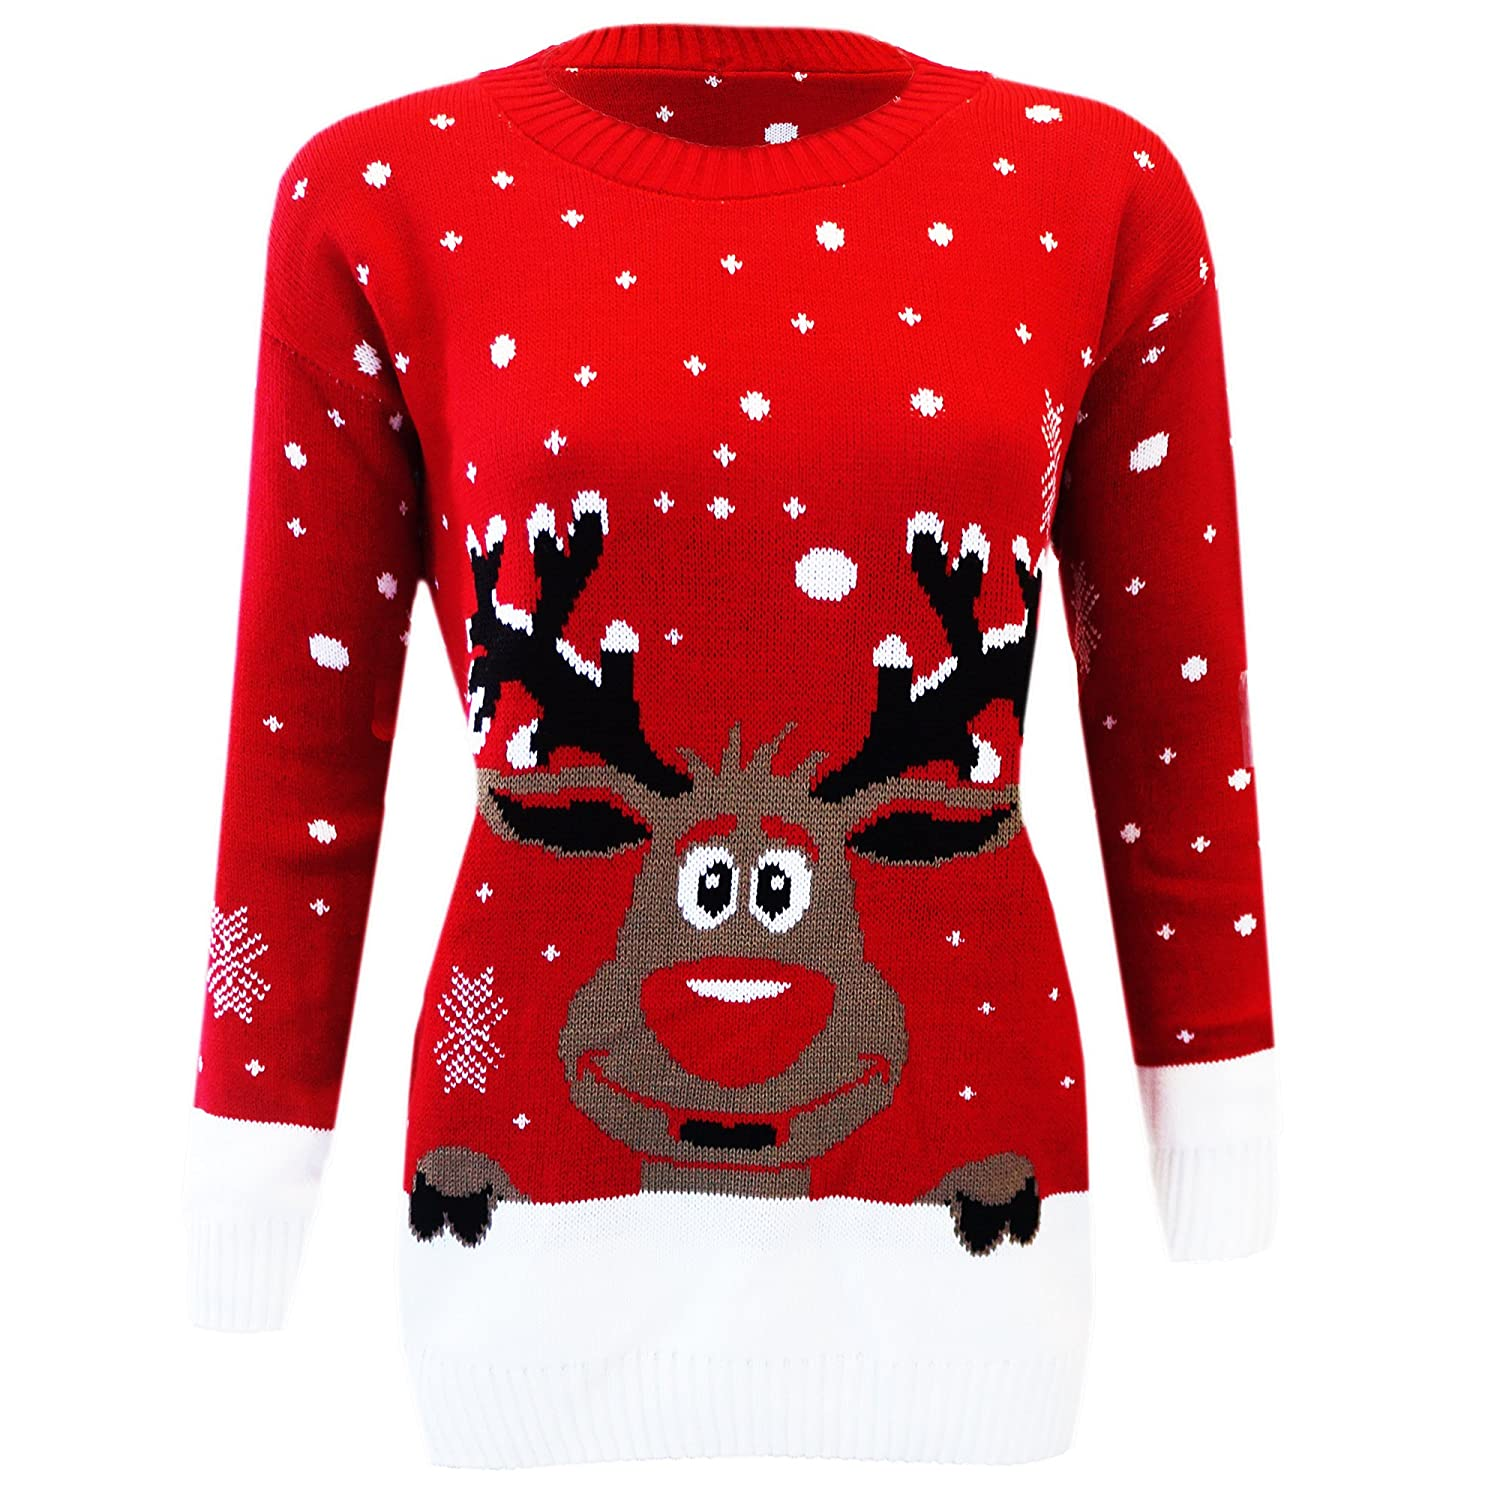 Kids Reindeer Rudolph Novelty Vintage Retro Christmas Snowflake Sweater Jumper